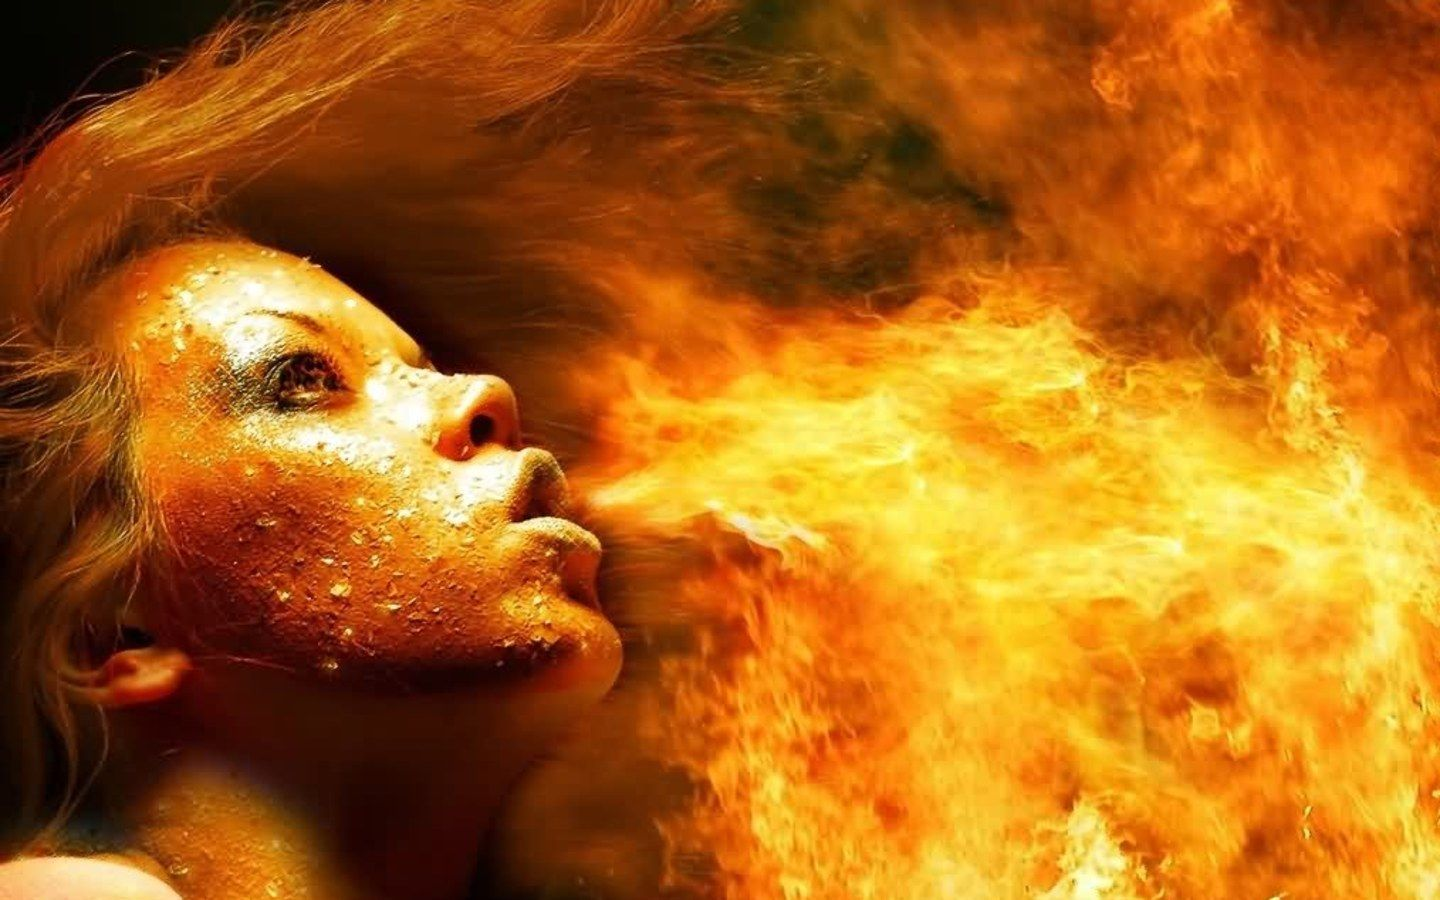 Miscellaneous Digital Fire Girls picture nr 37461 1440x900